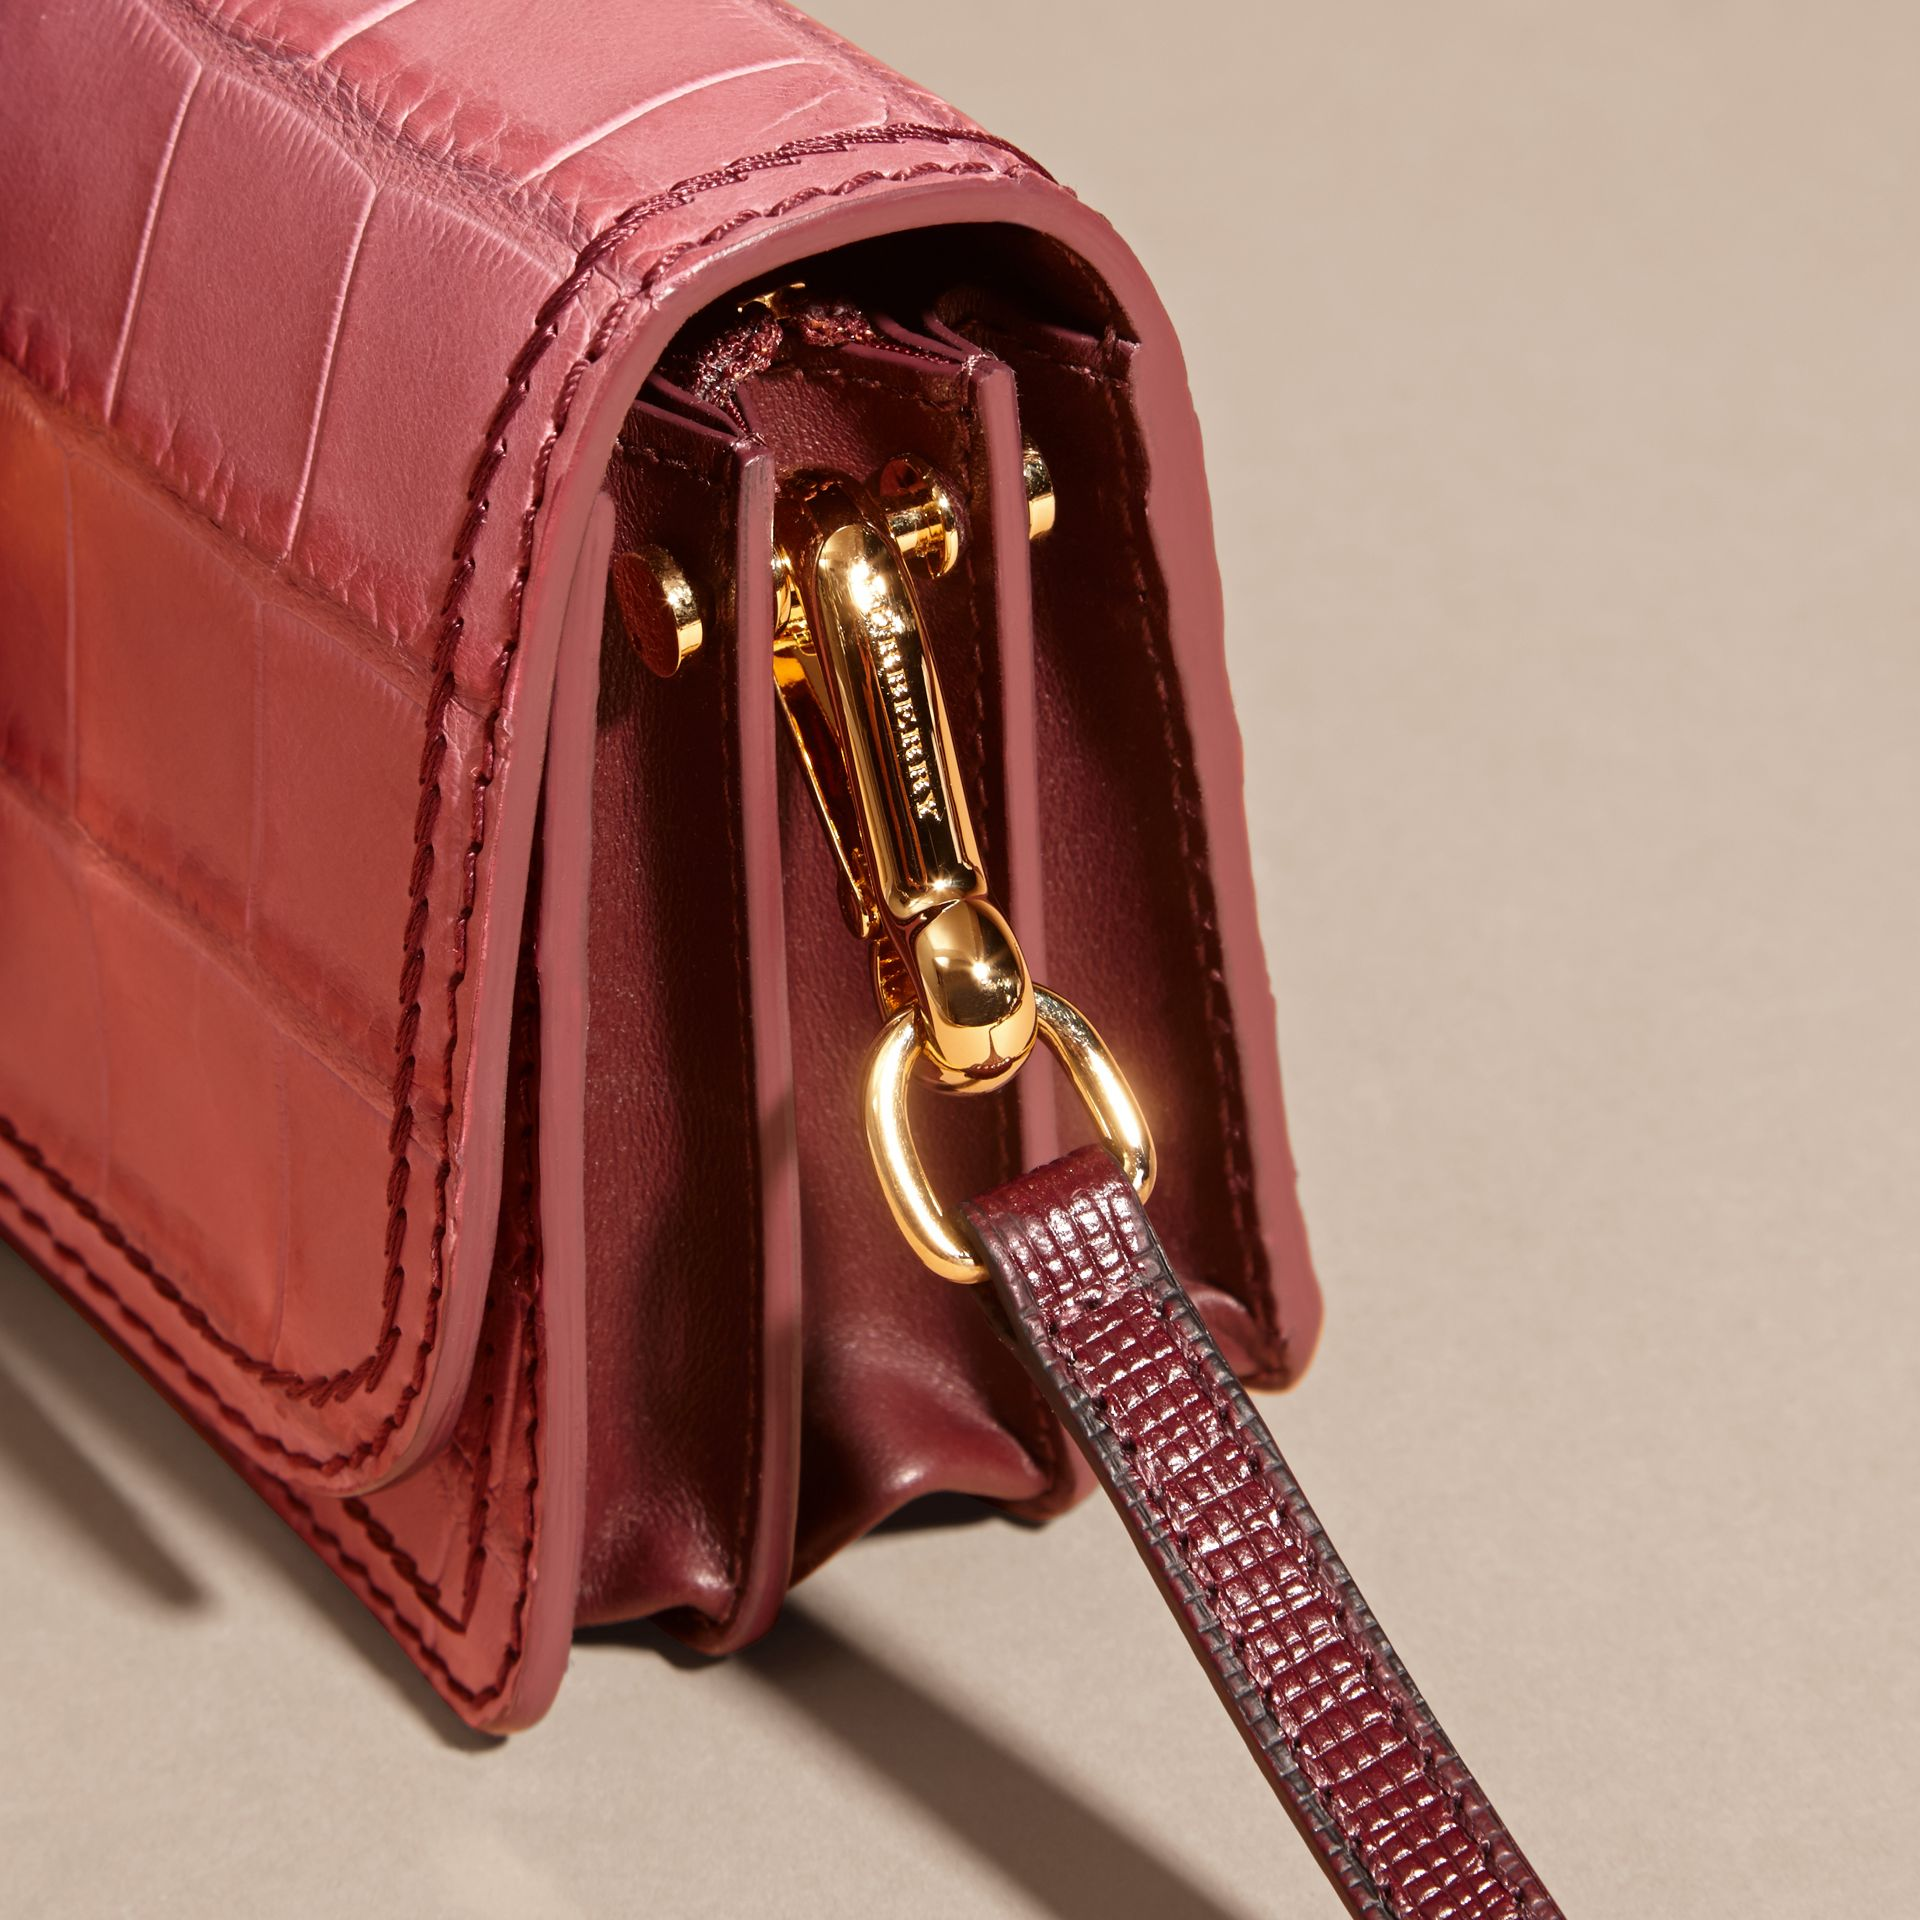 The Small Buckle Bag in Alligator and Leather in Dusky Pink/ Burgundy - Women | Burberry Australia - gallery image 2